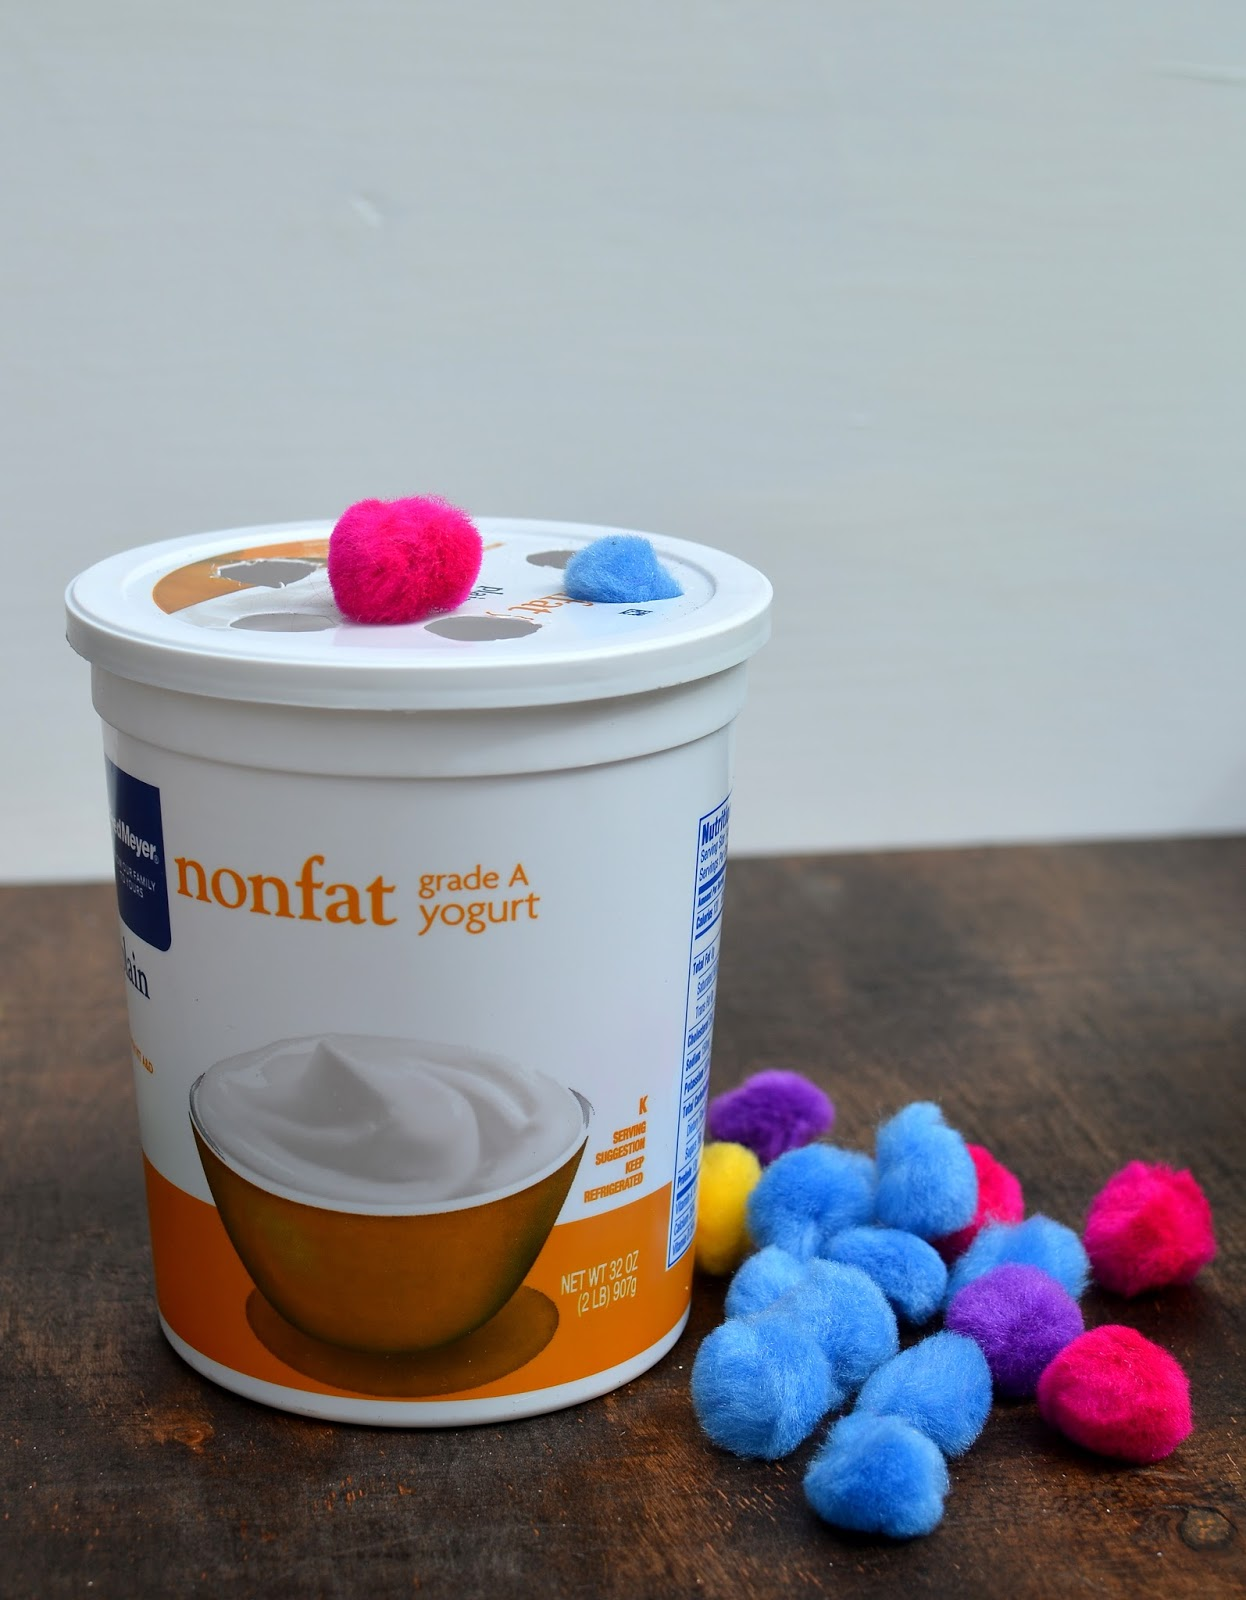 Activities for toddlers for traveling: yogurt container and fluff balls